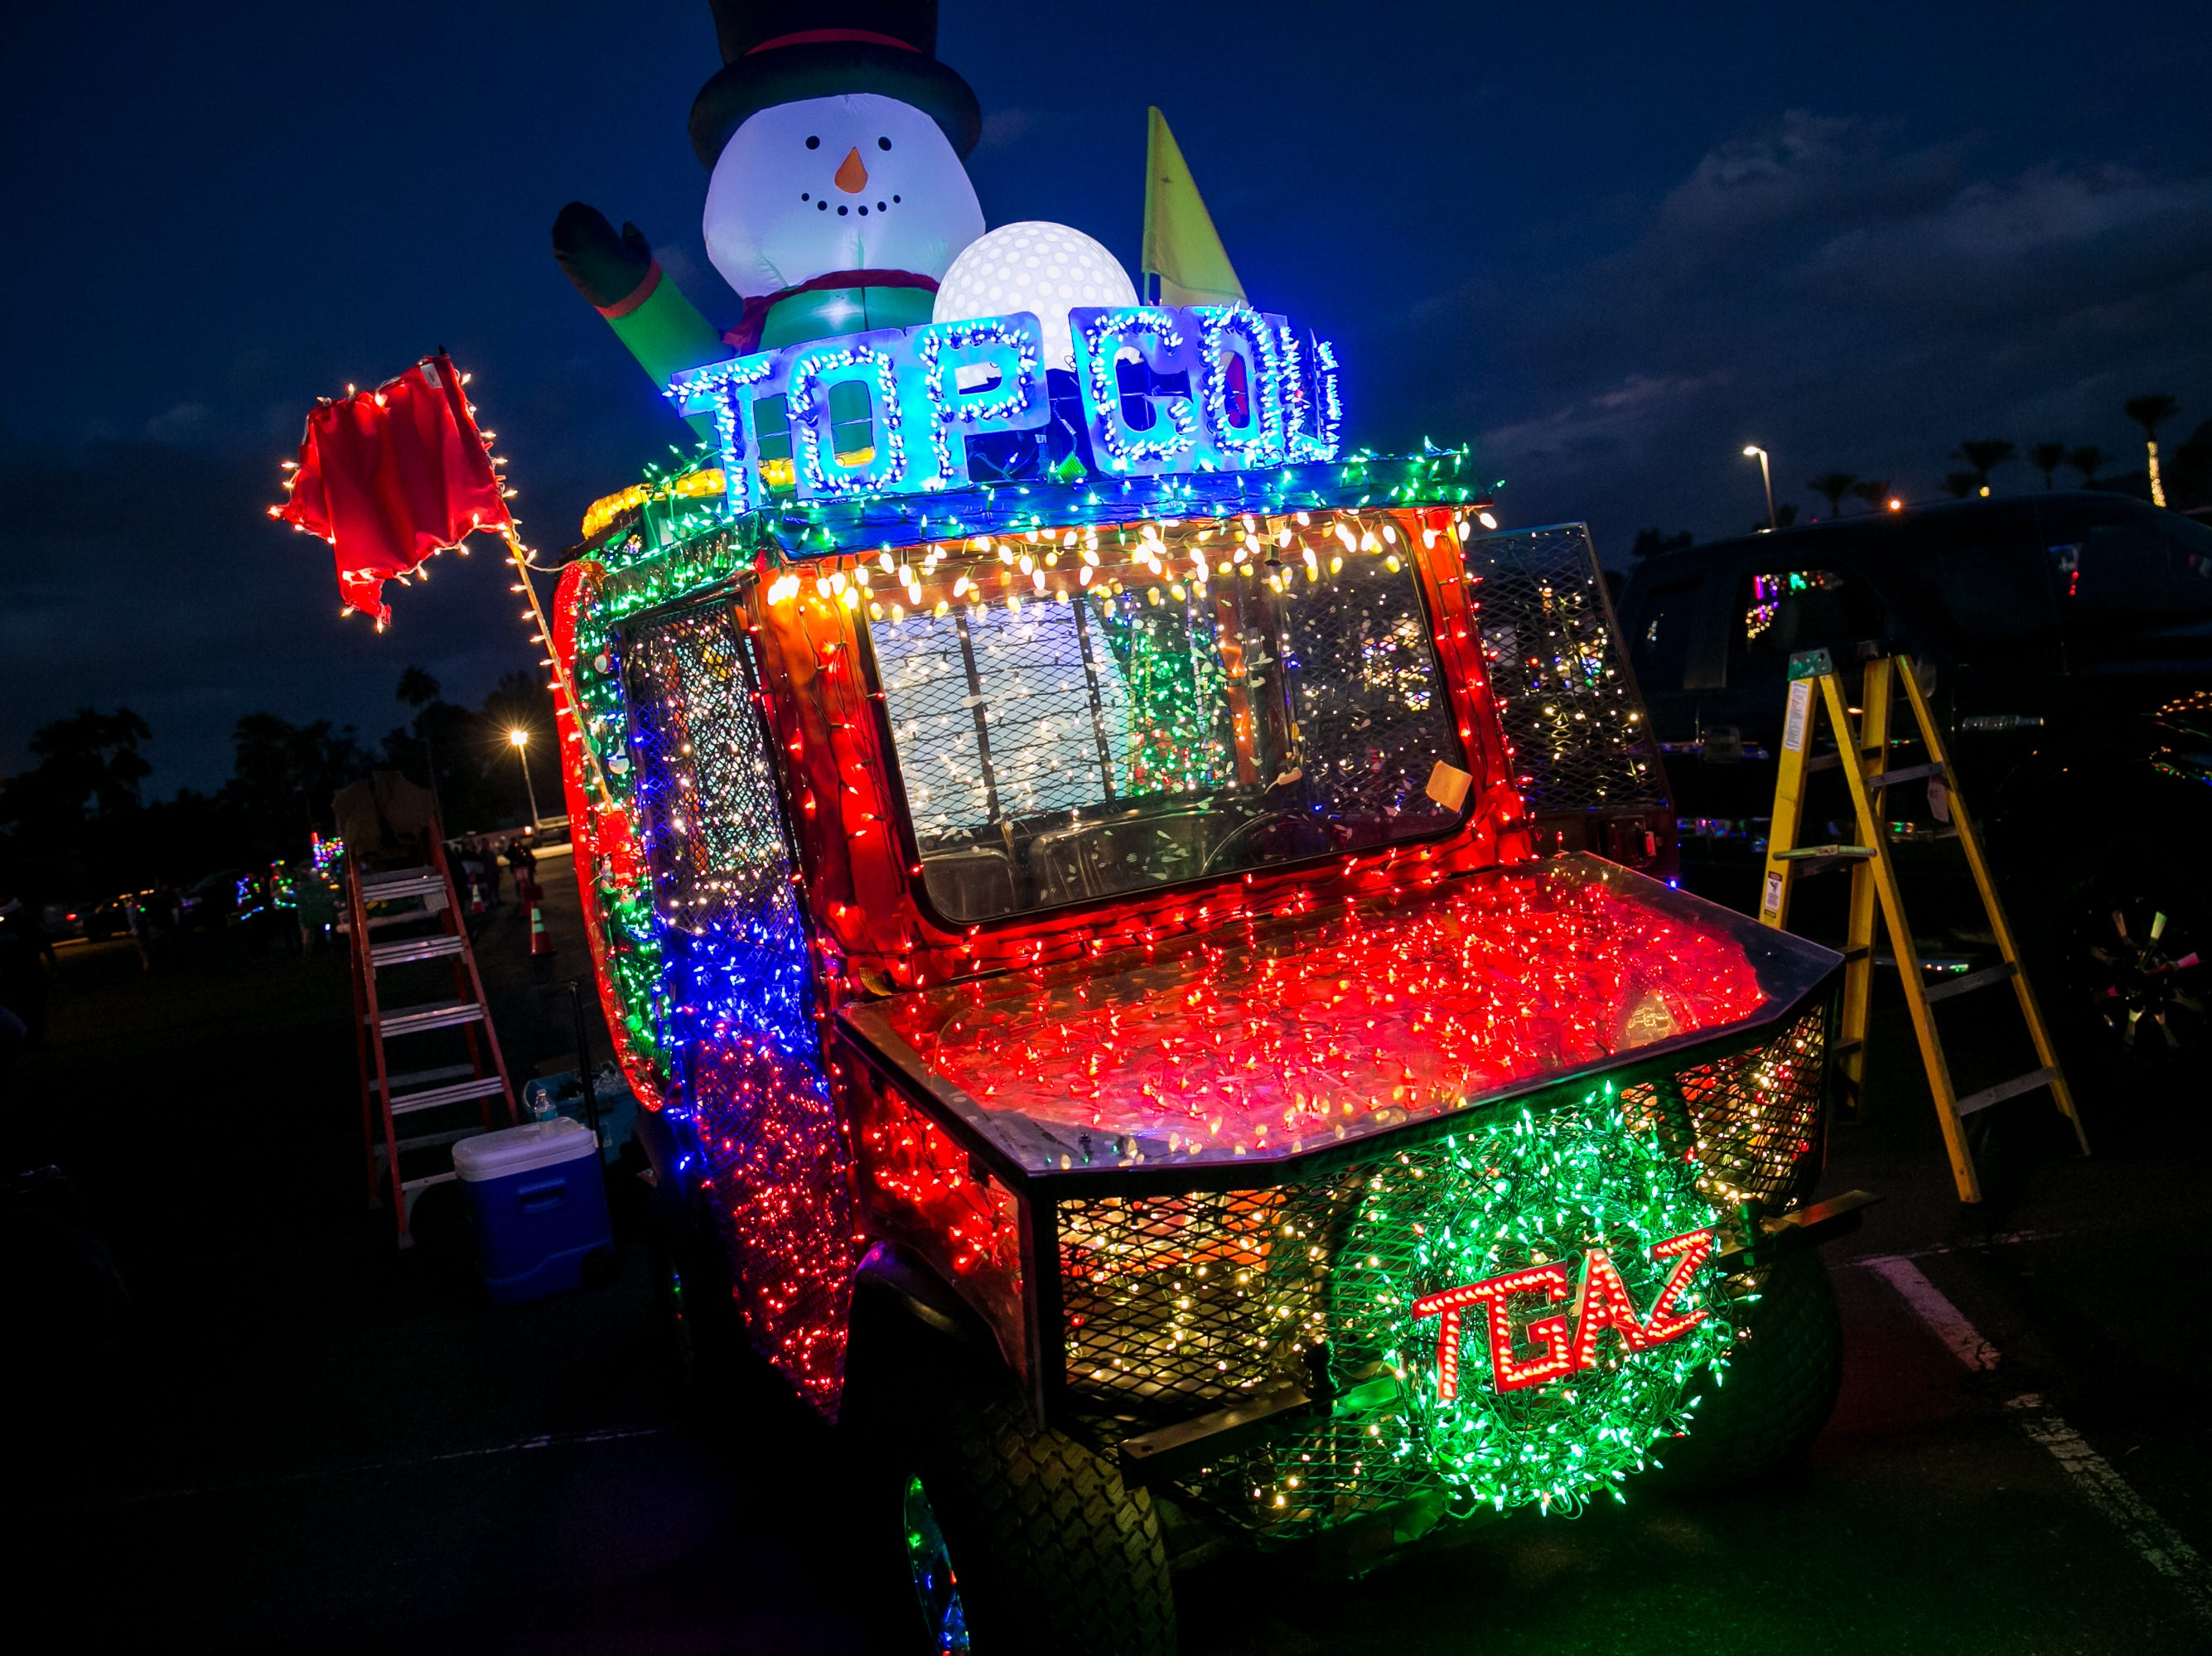 Top Golf's float looked amazing during the APS Electric Light Parade in Central Phoenix on Saturday, December 1, 2018.